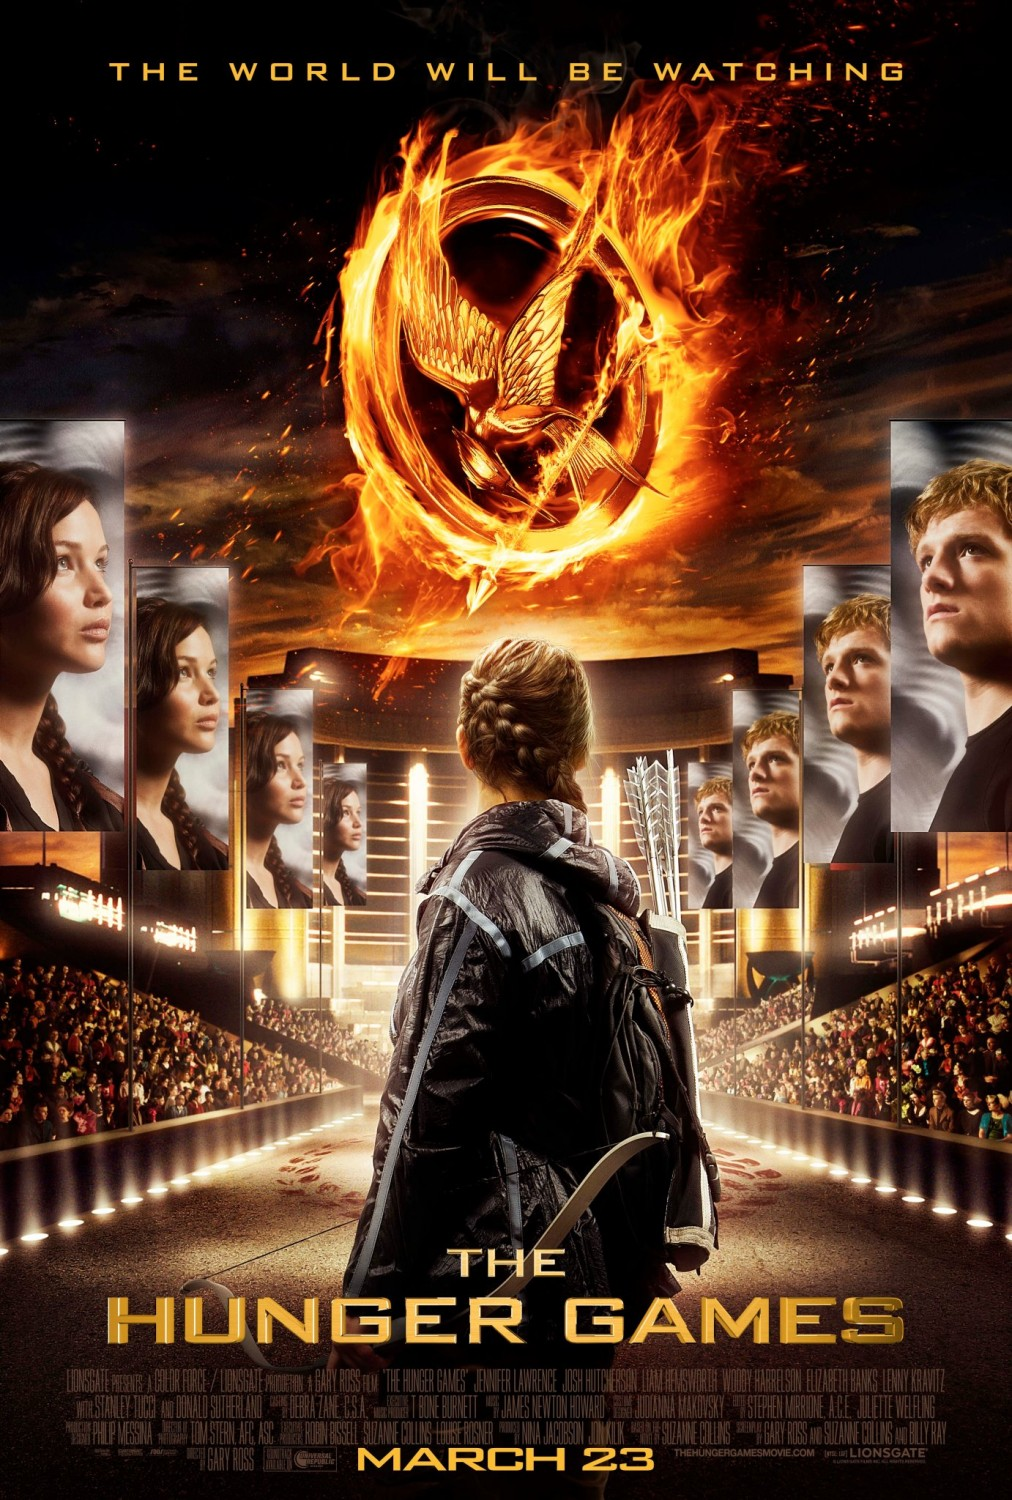 Jogos Vorazes (The Hunger Games) DVDRip Dual Áudio - Torrent